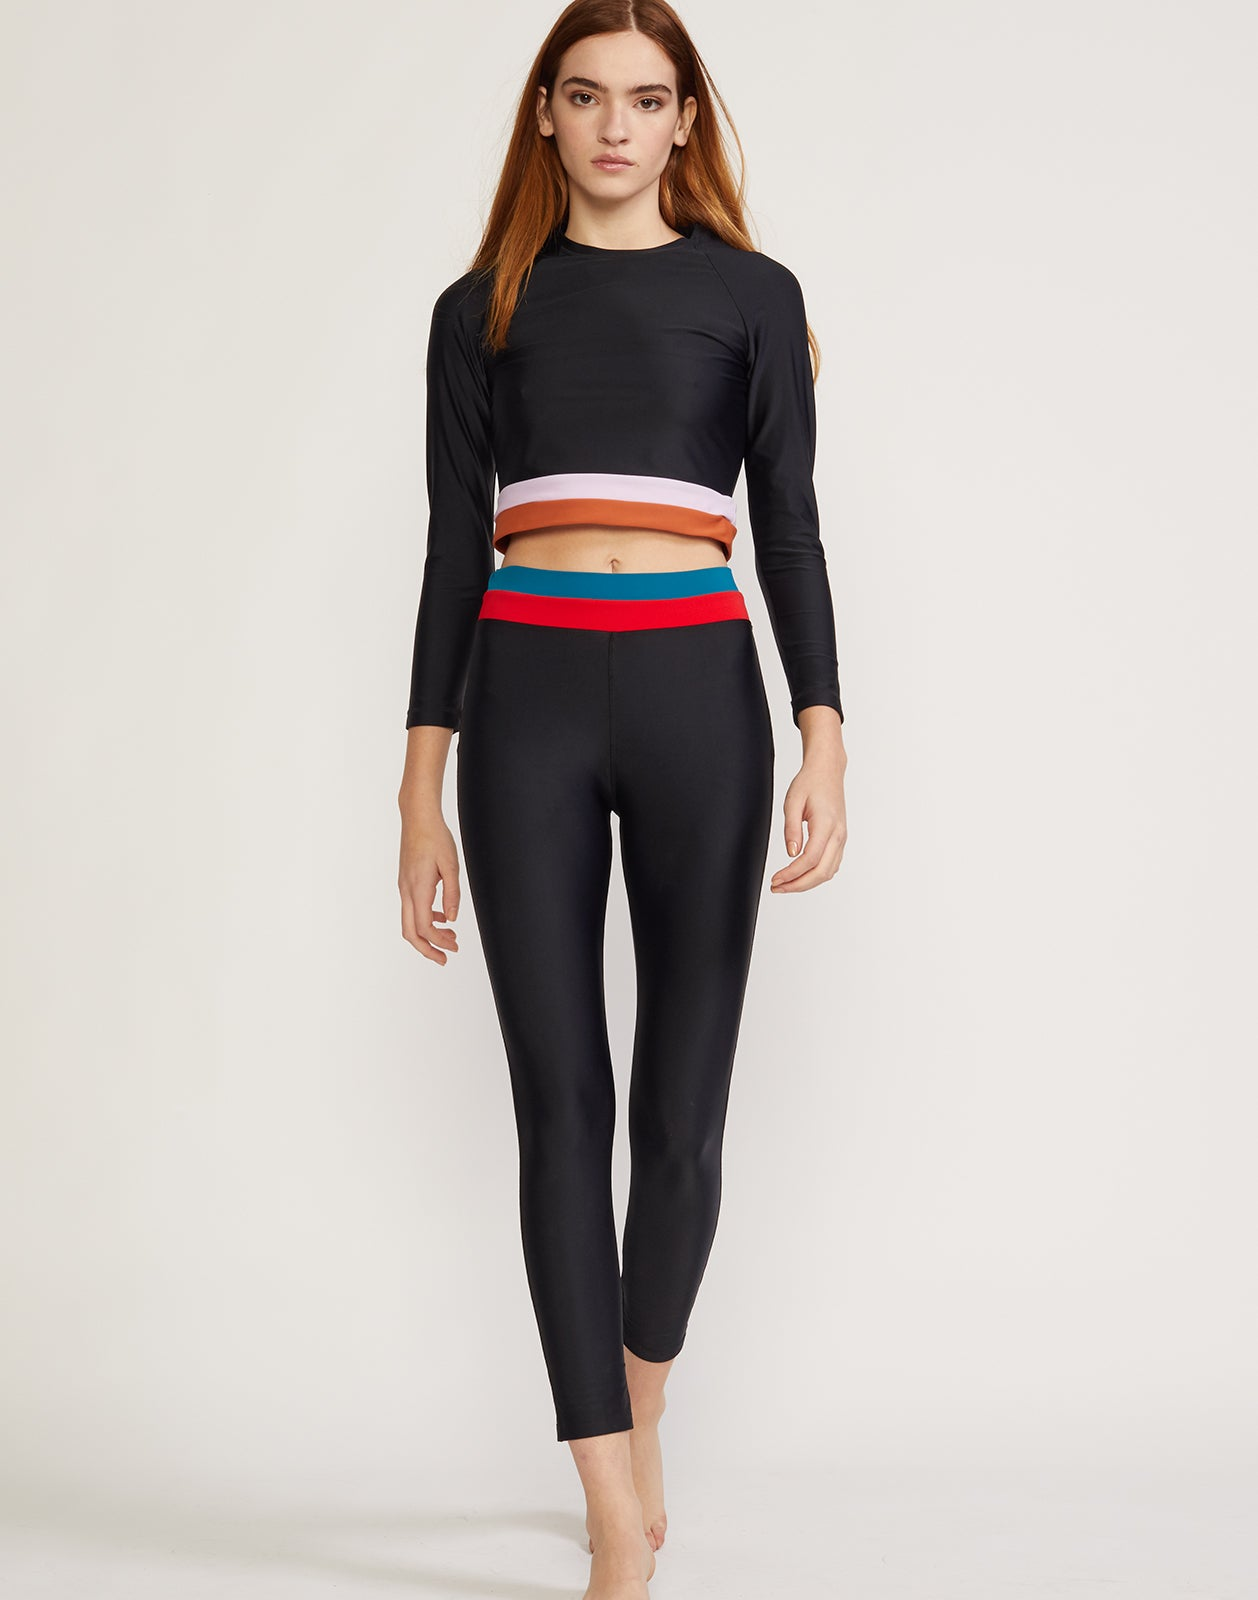 Front view of colorblock stripe surf and fitness legging.